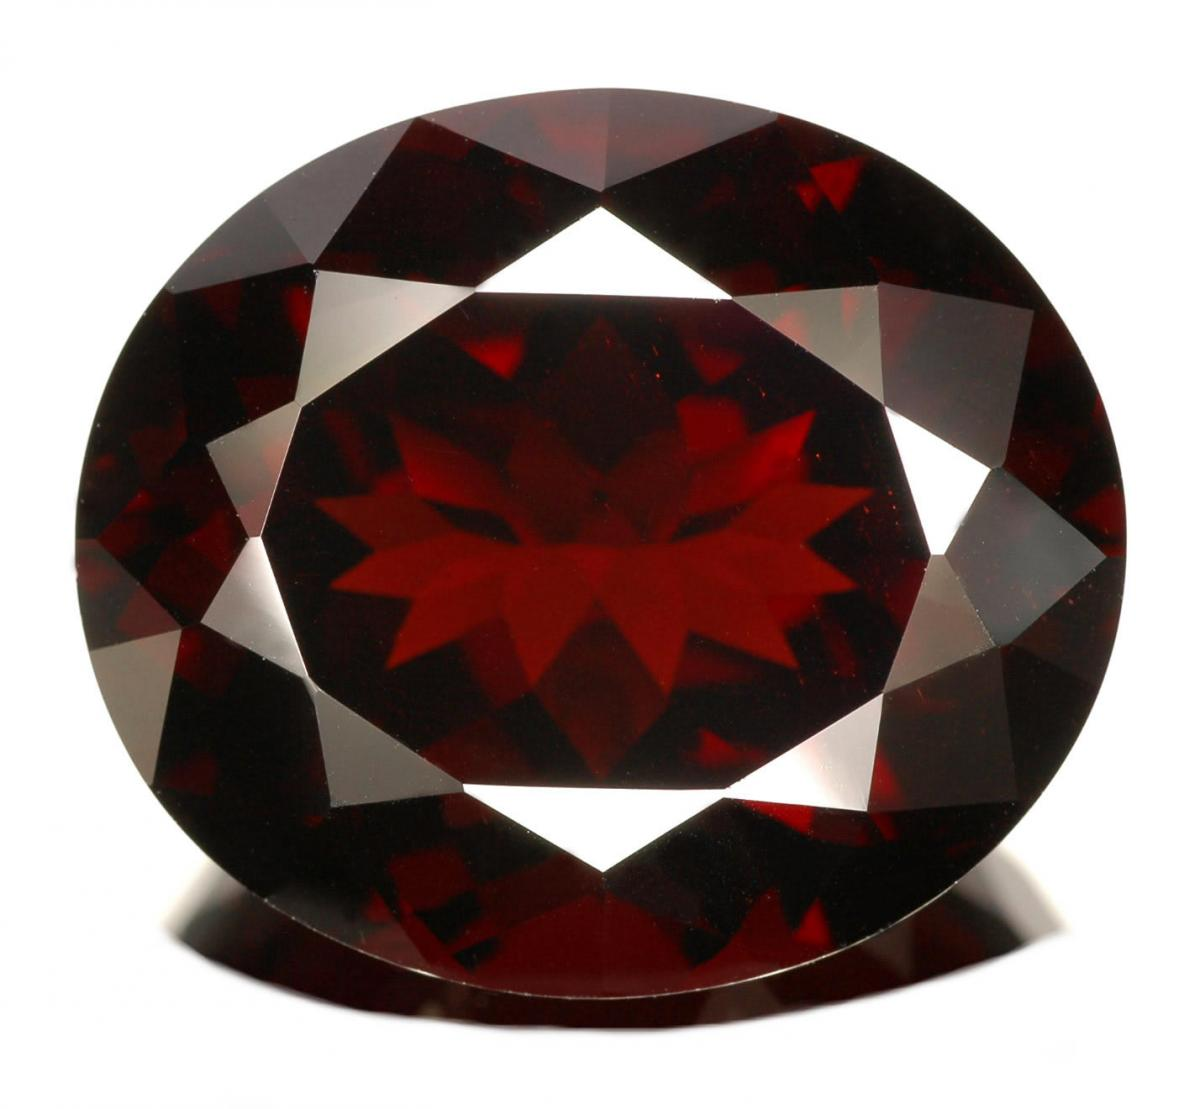 Semi precious wholesale Garnet gemstones - photo#41